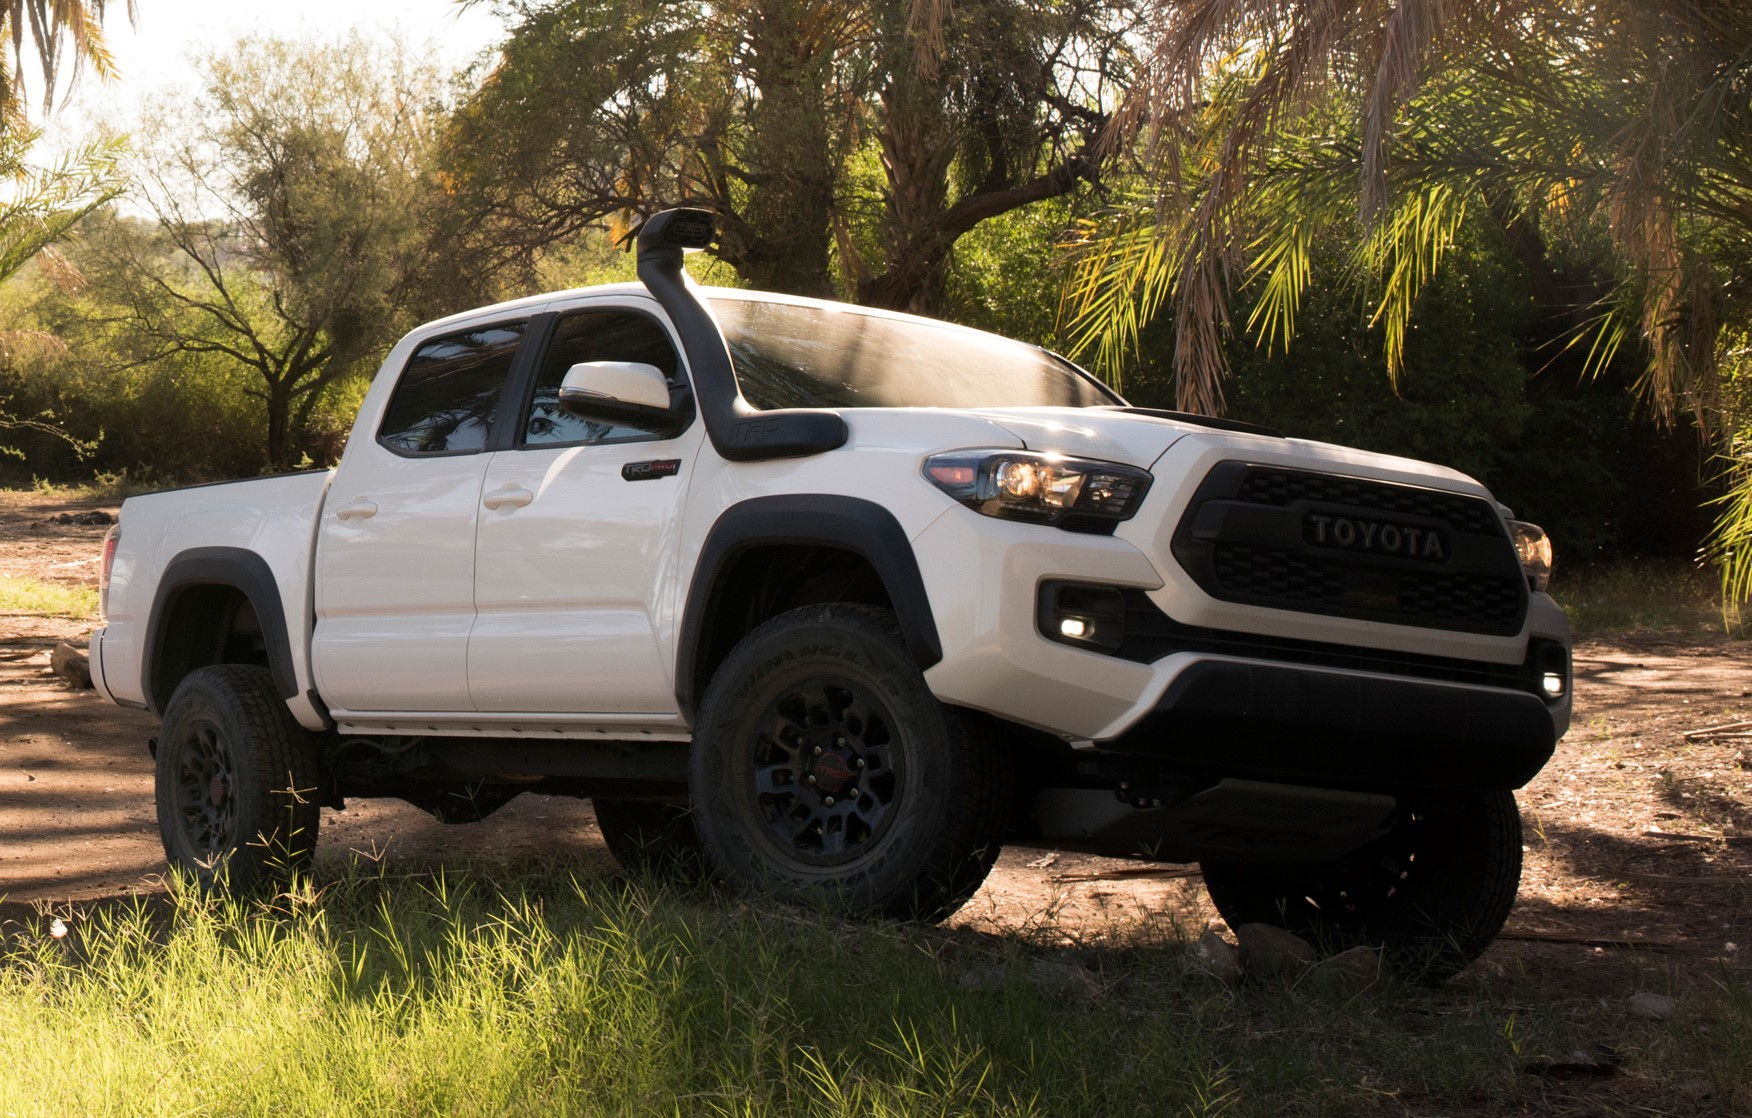 Toyota Tundra Trd Pro >> 2019 TOYOTA TRD PROS TYPIFY ULTIMATE OFF-ROAD PERFORMANCE - myAutoWorld.com